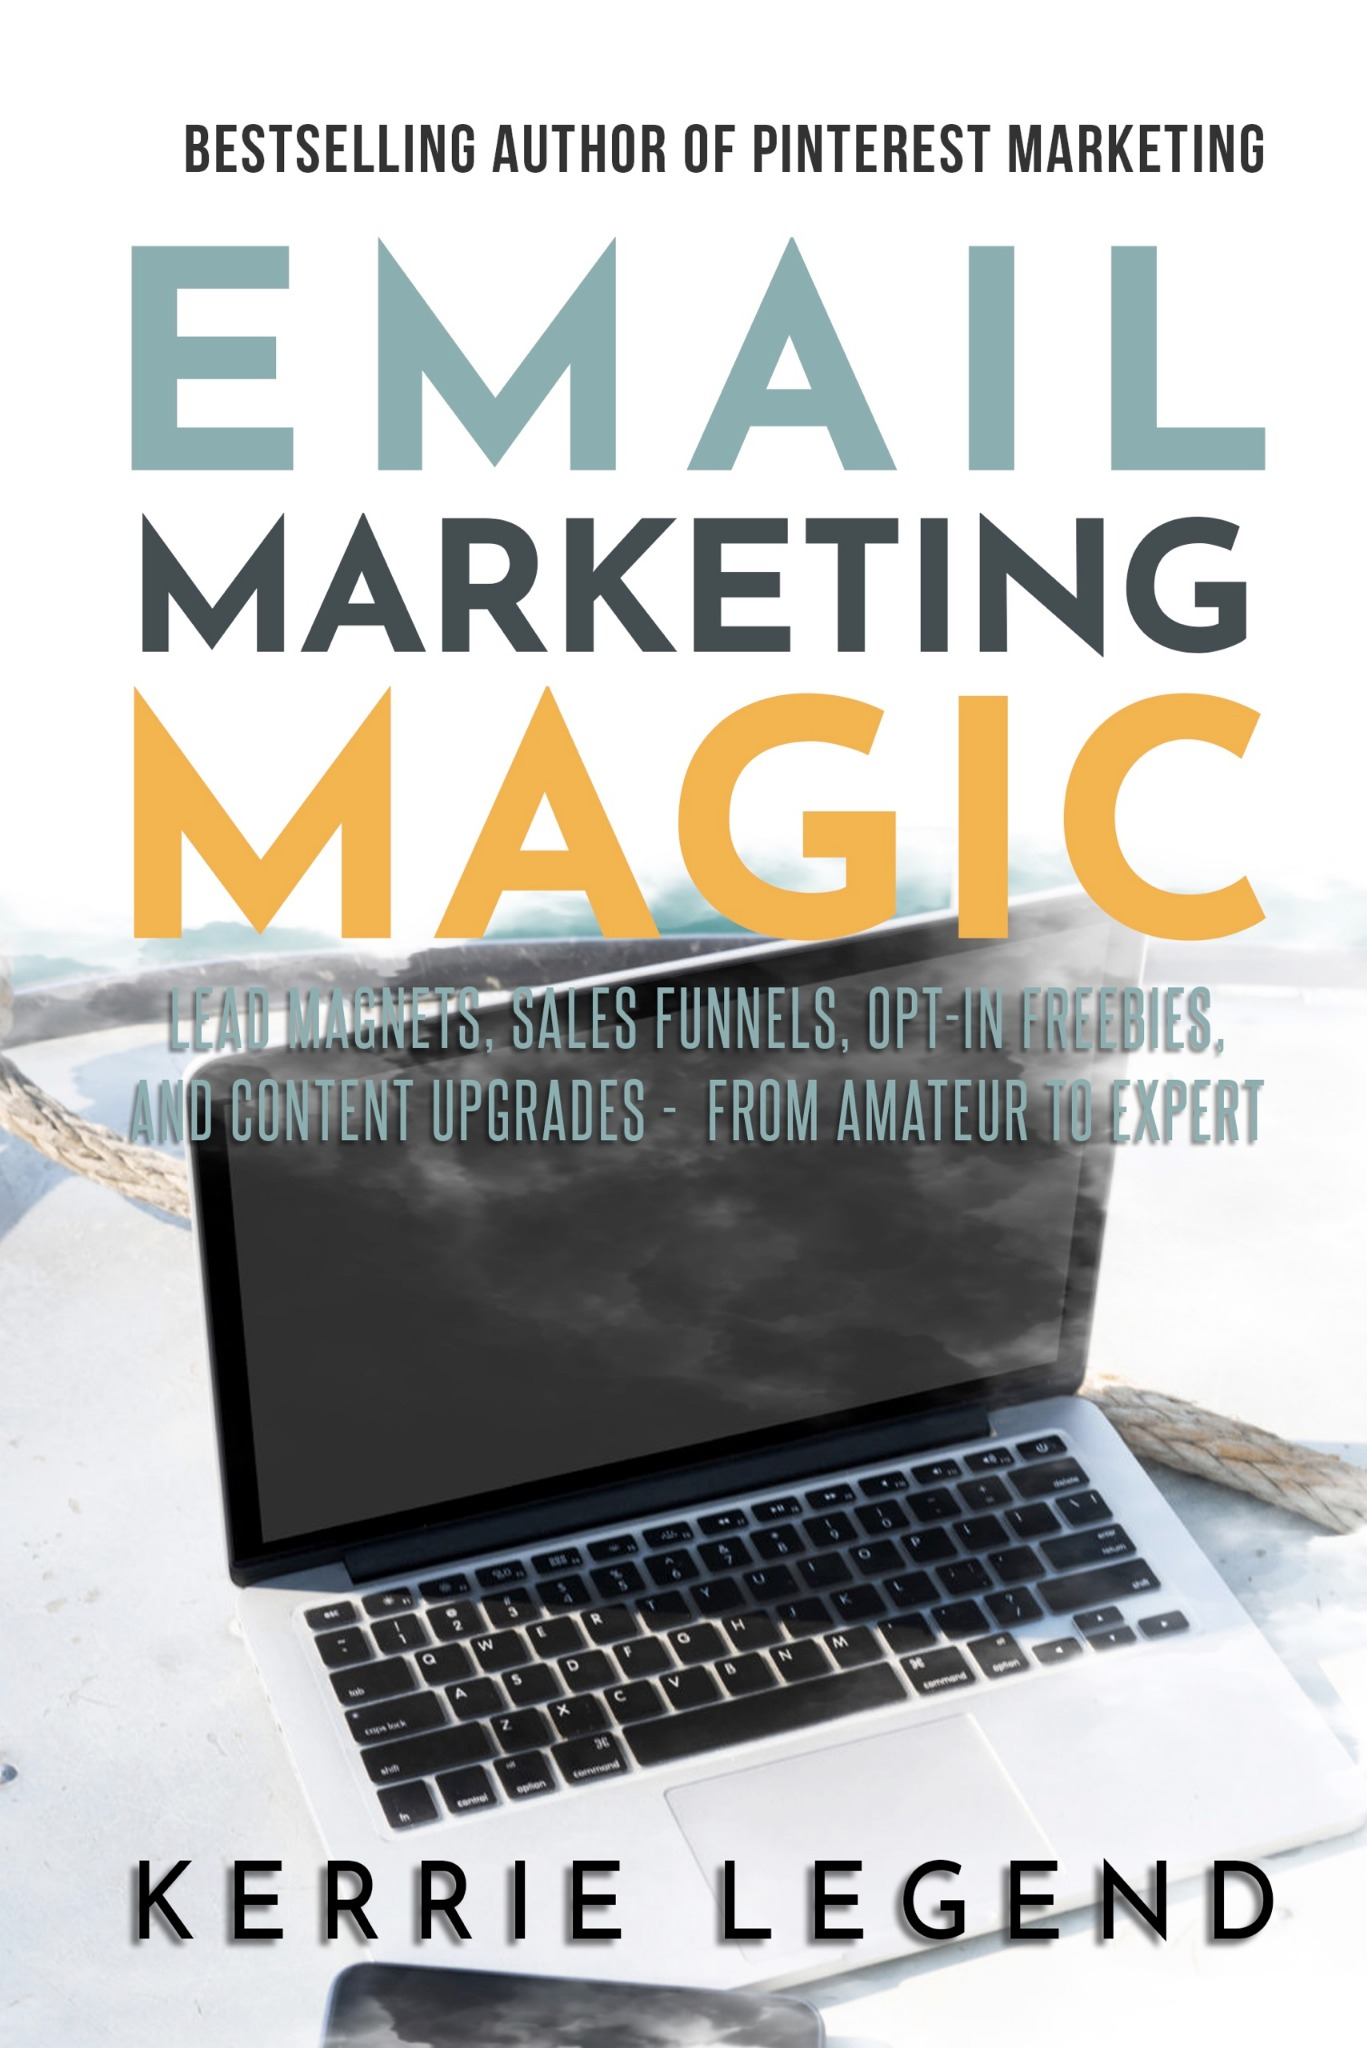 Email Marketing Magic: Lead Magnets, Sales Funnels, Opt-in Freebies, and Content Upgrades - from Ama